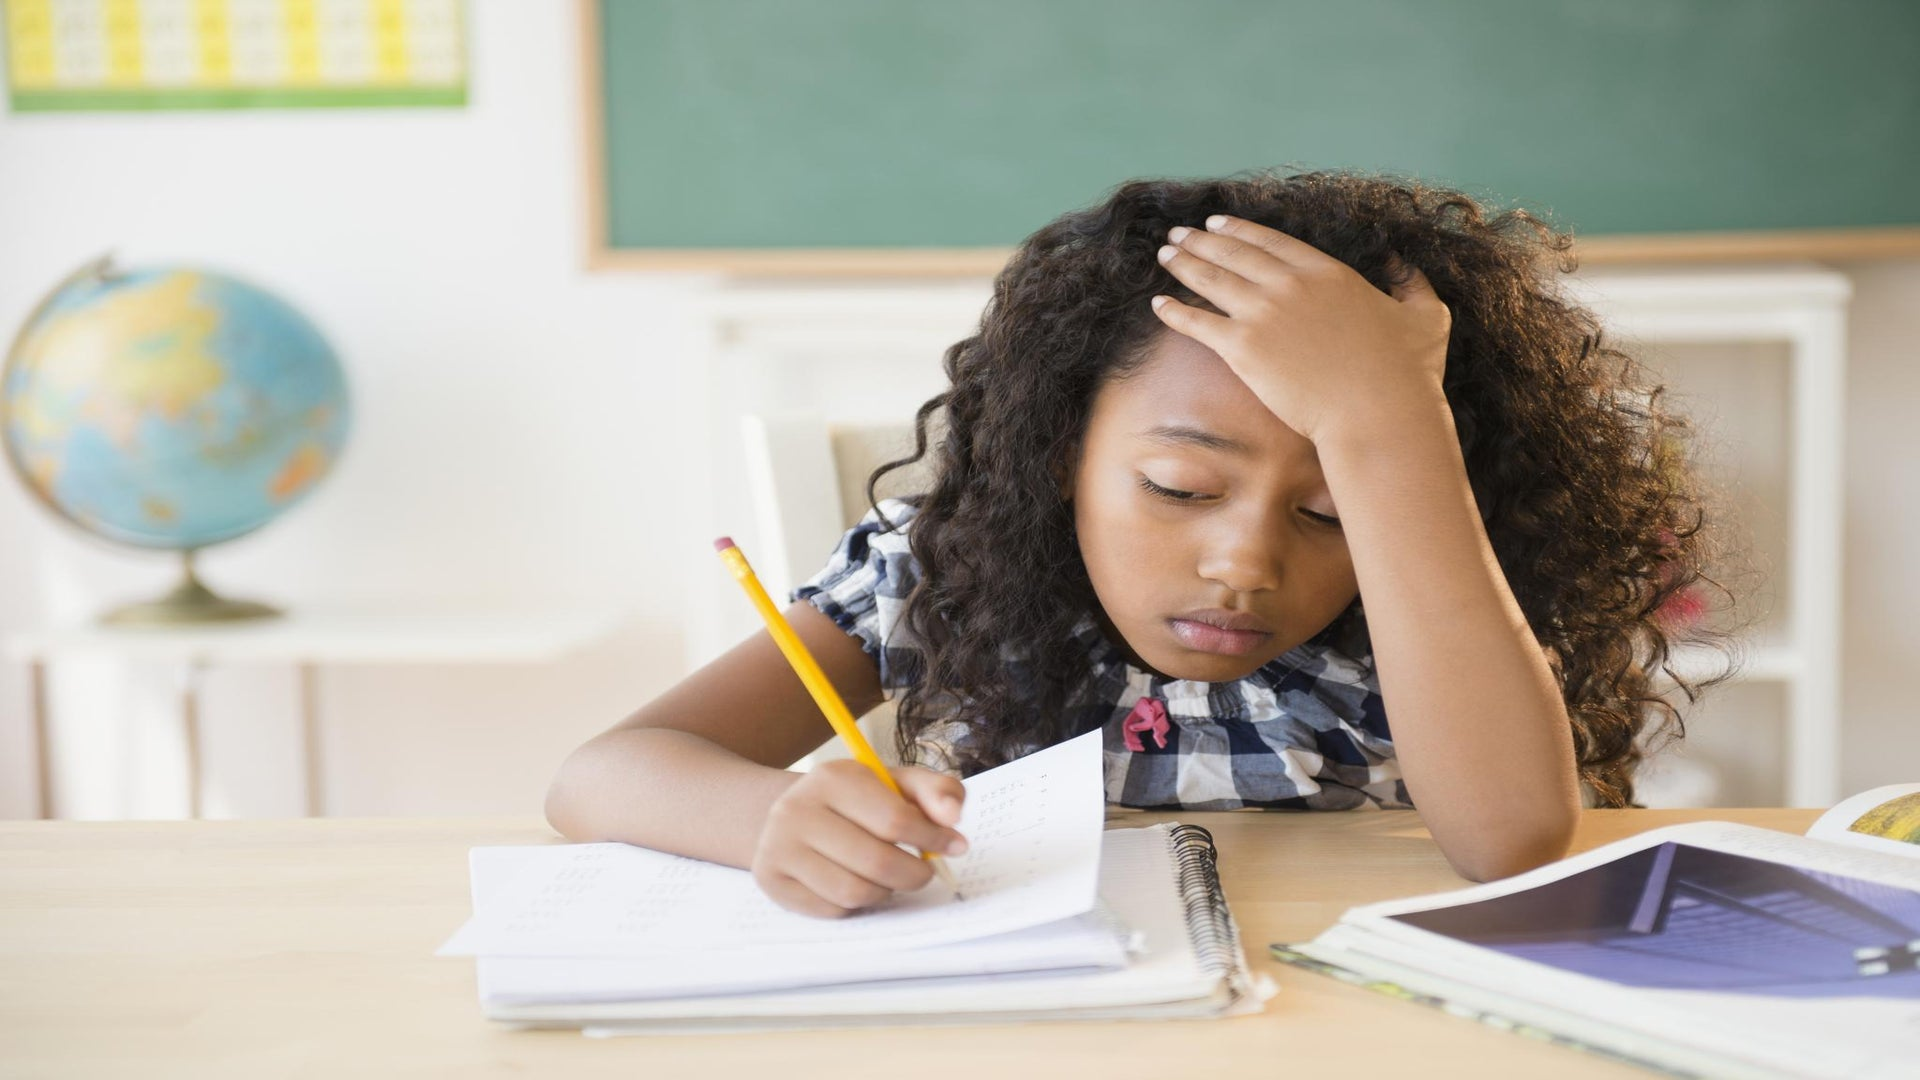 Testing 1,2,3: Tips to Protect Your Child's Education